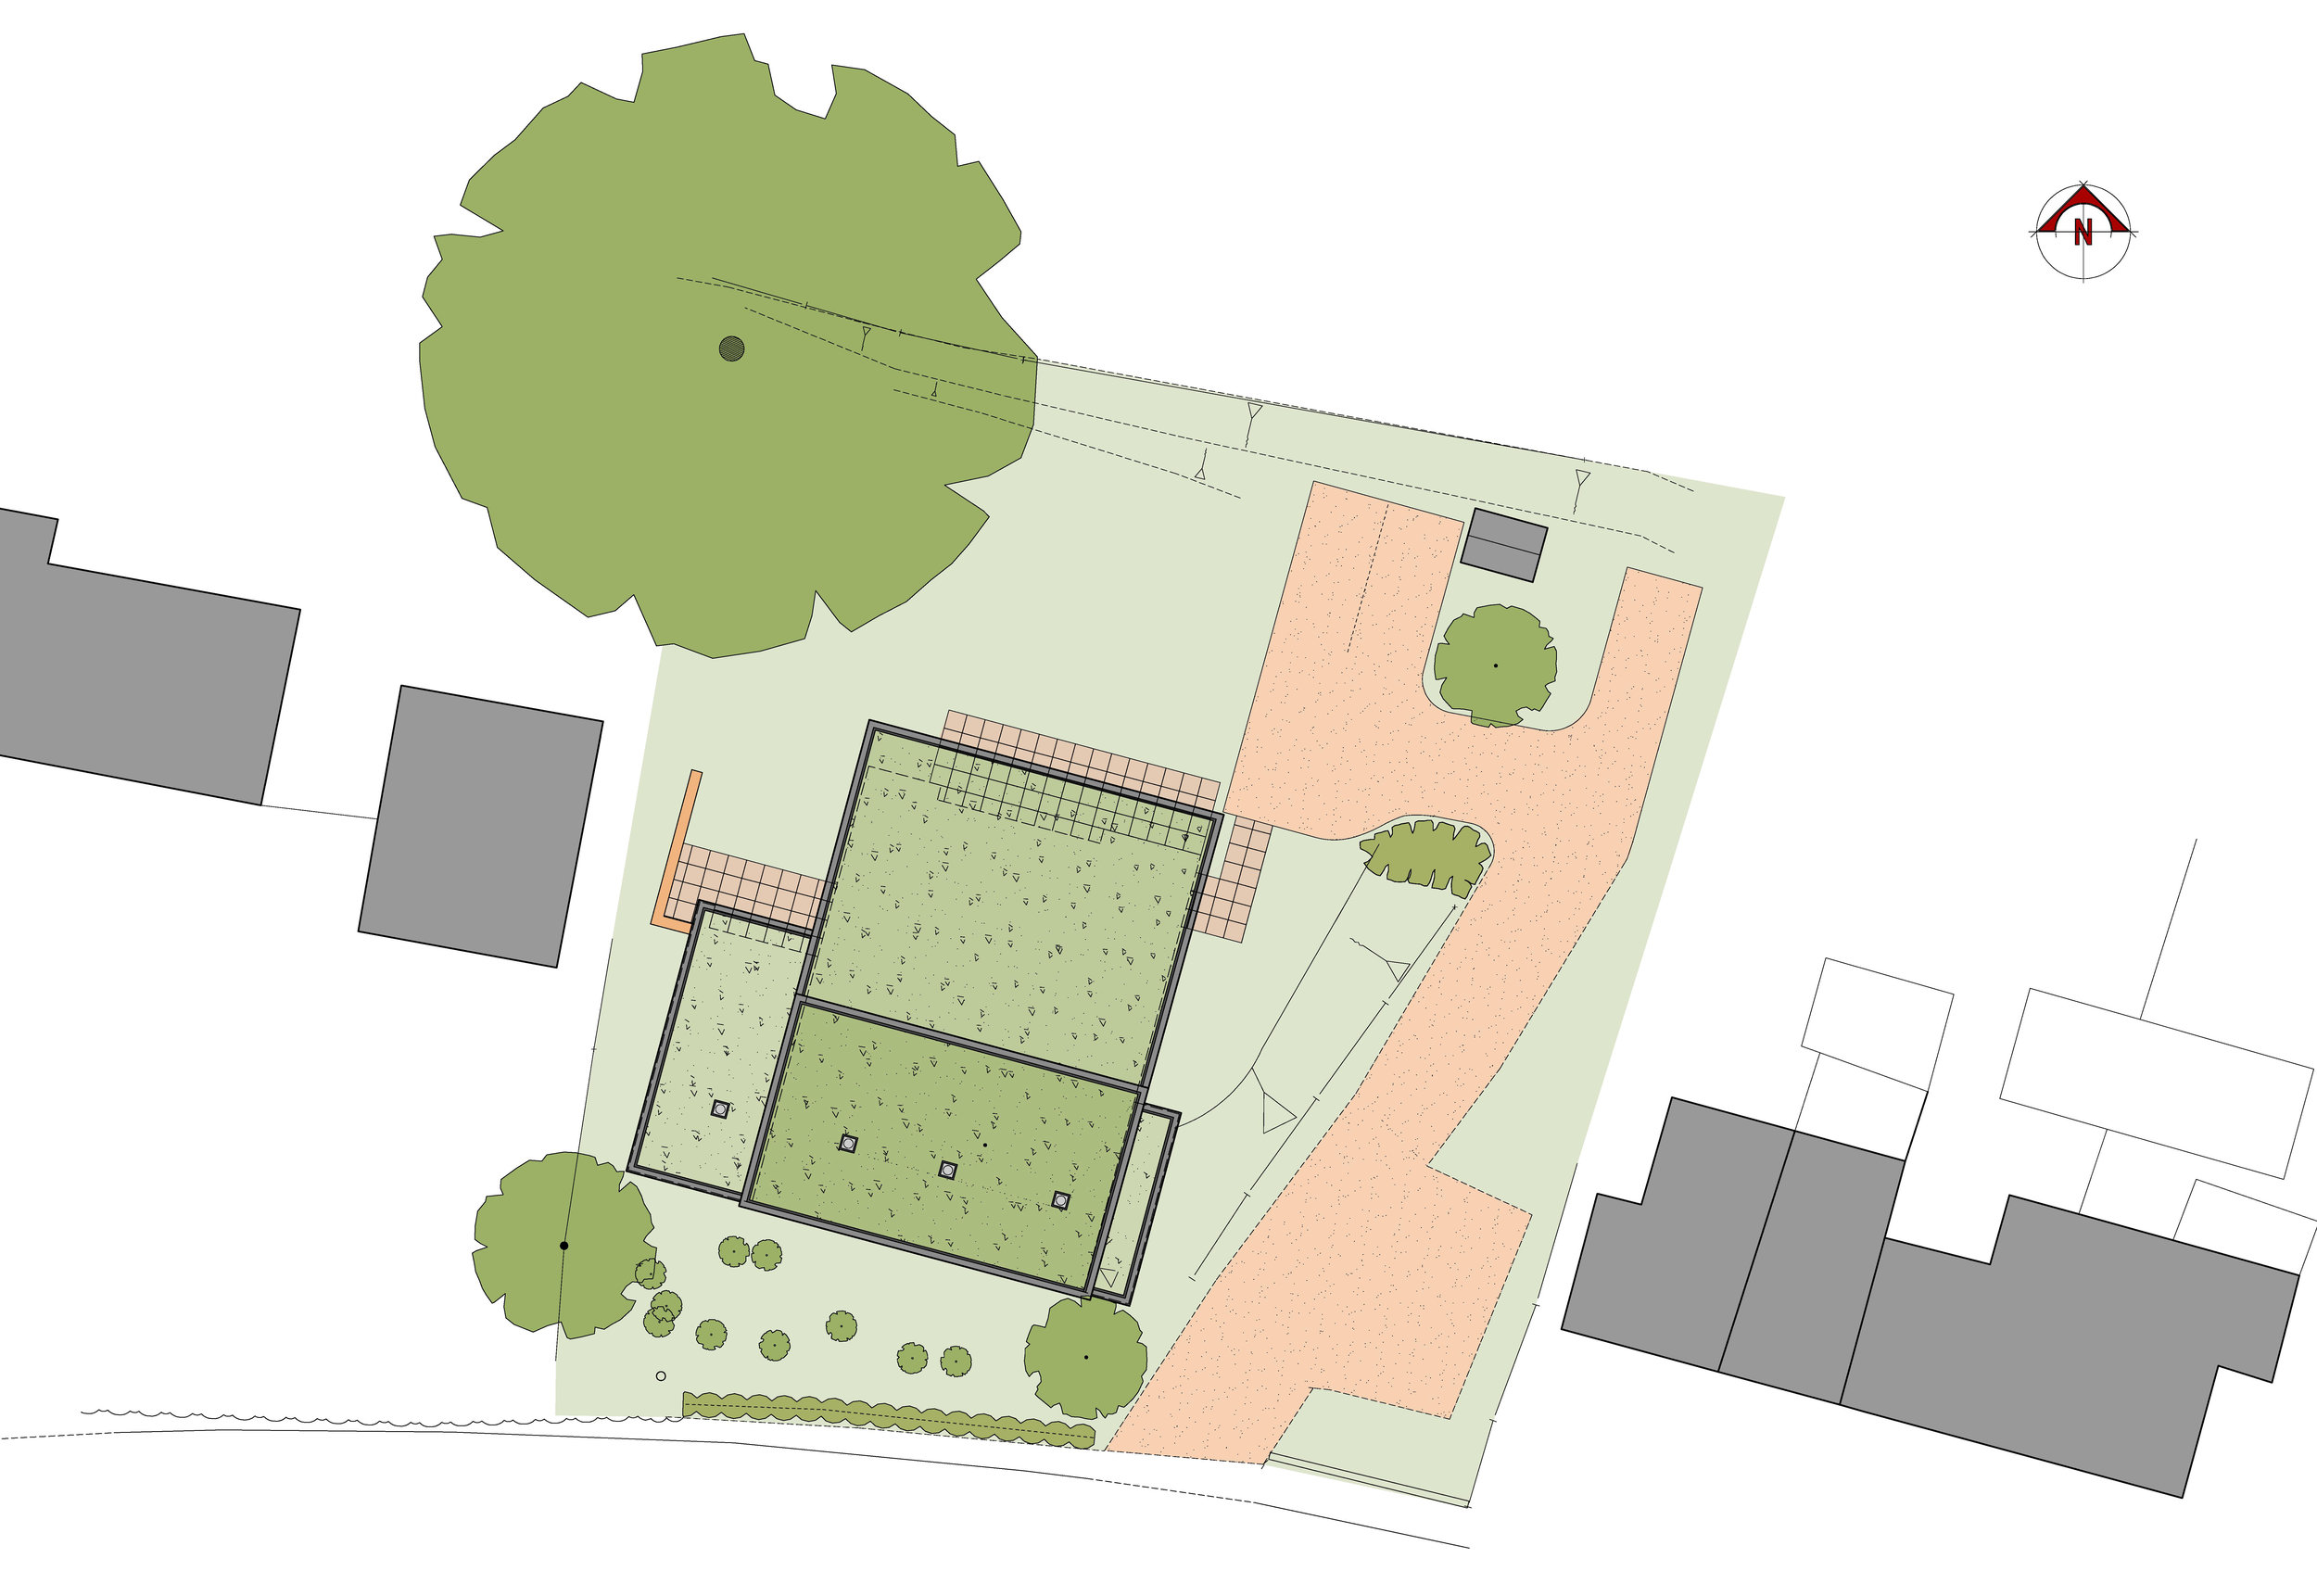 A proposed house set within the landscape, 1 The Hill, Ousden achieved planning permission on a contentious site adjacent to a Grade II listed building. Due to the design concept of being constructed within the hillside, it would be hidden from view to minimise impact on the site and surroundings.